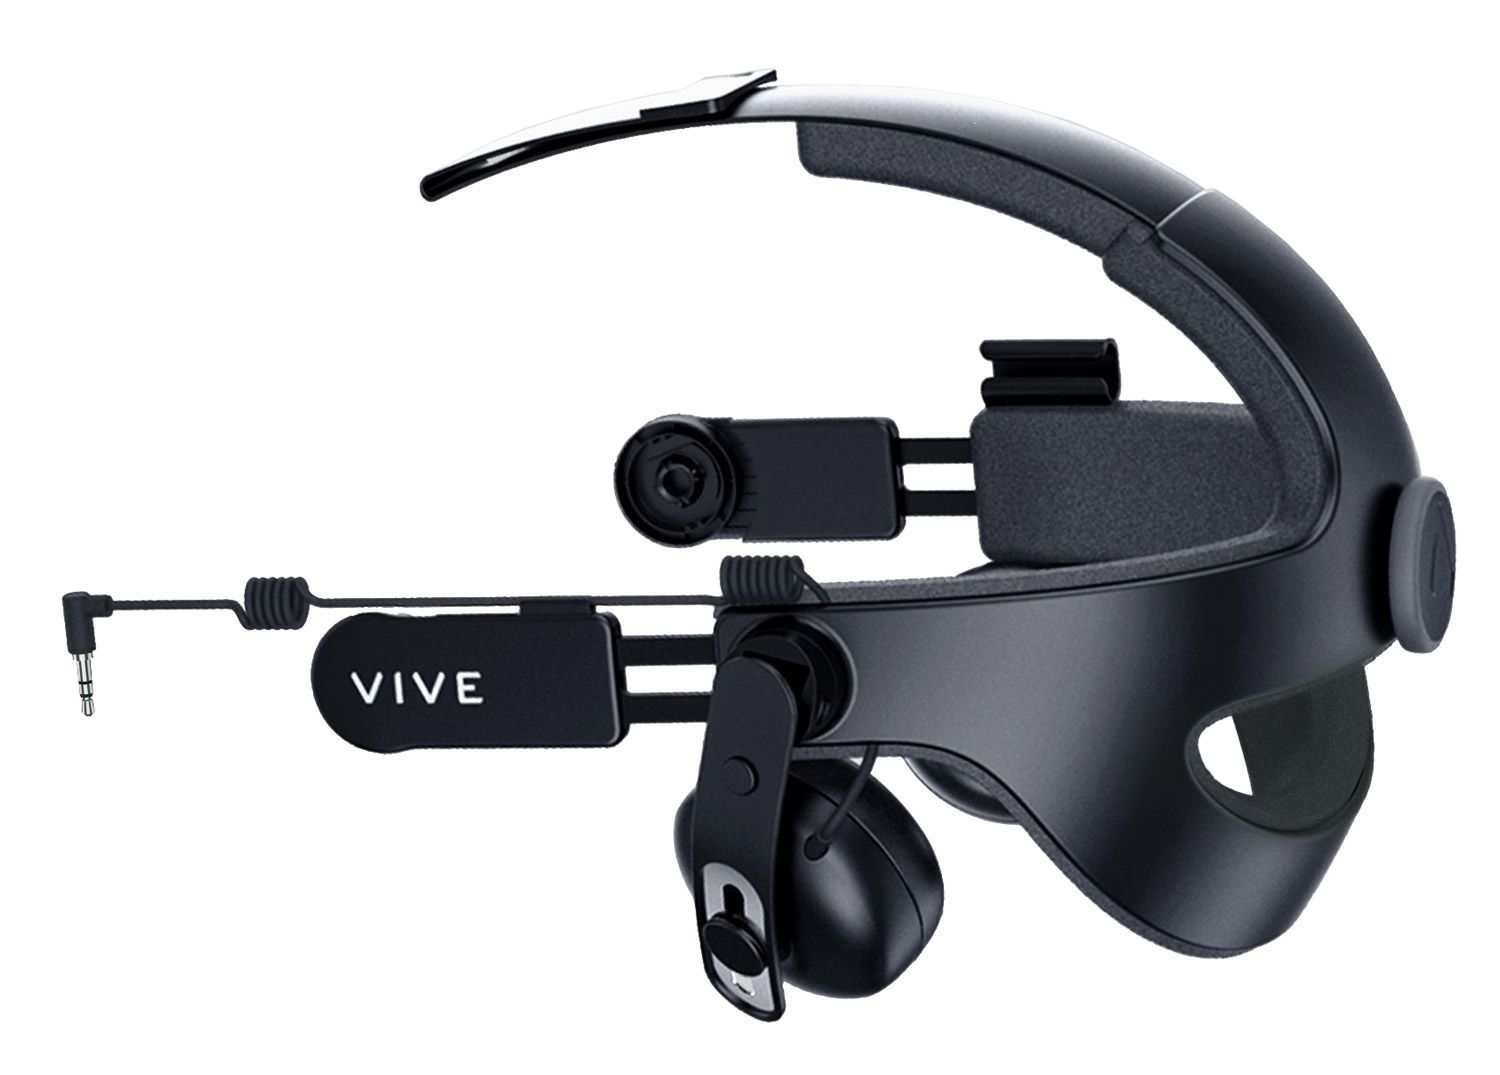 Best VR Accessories For HTC Vive